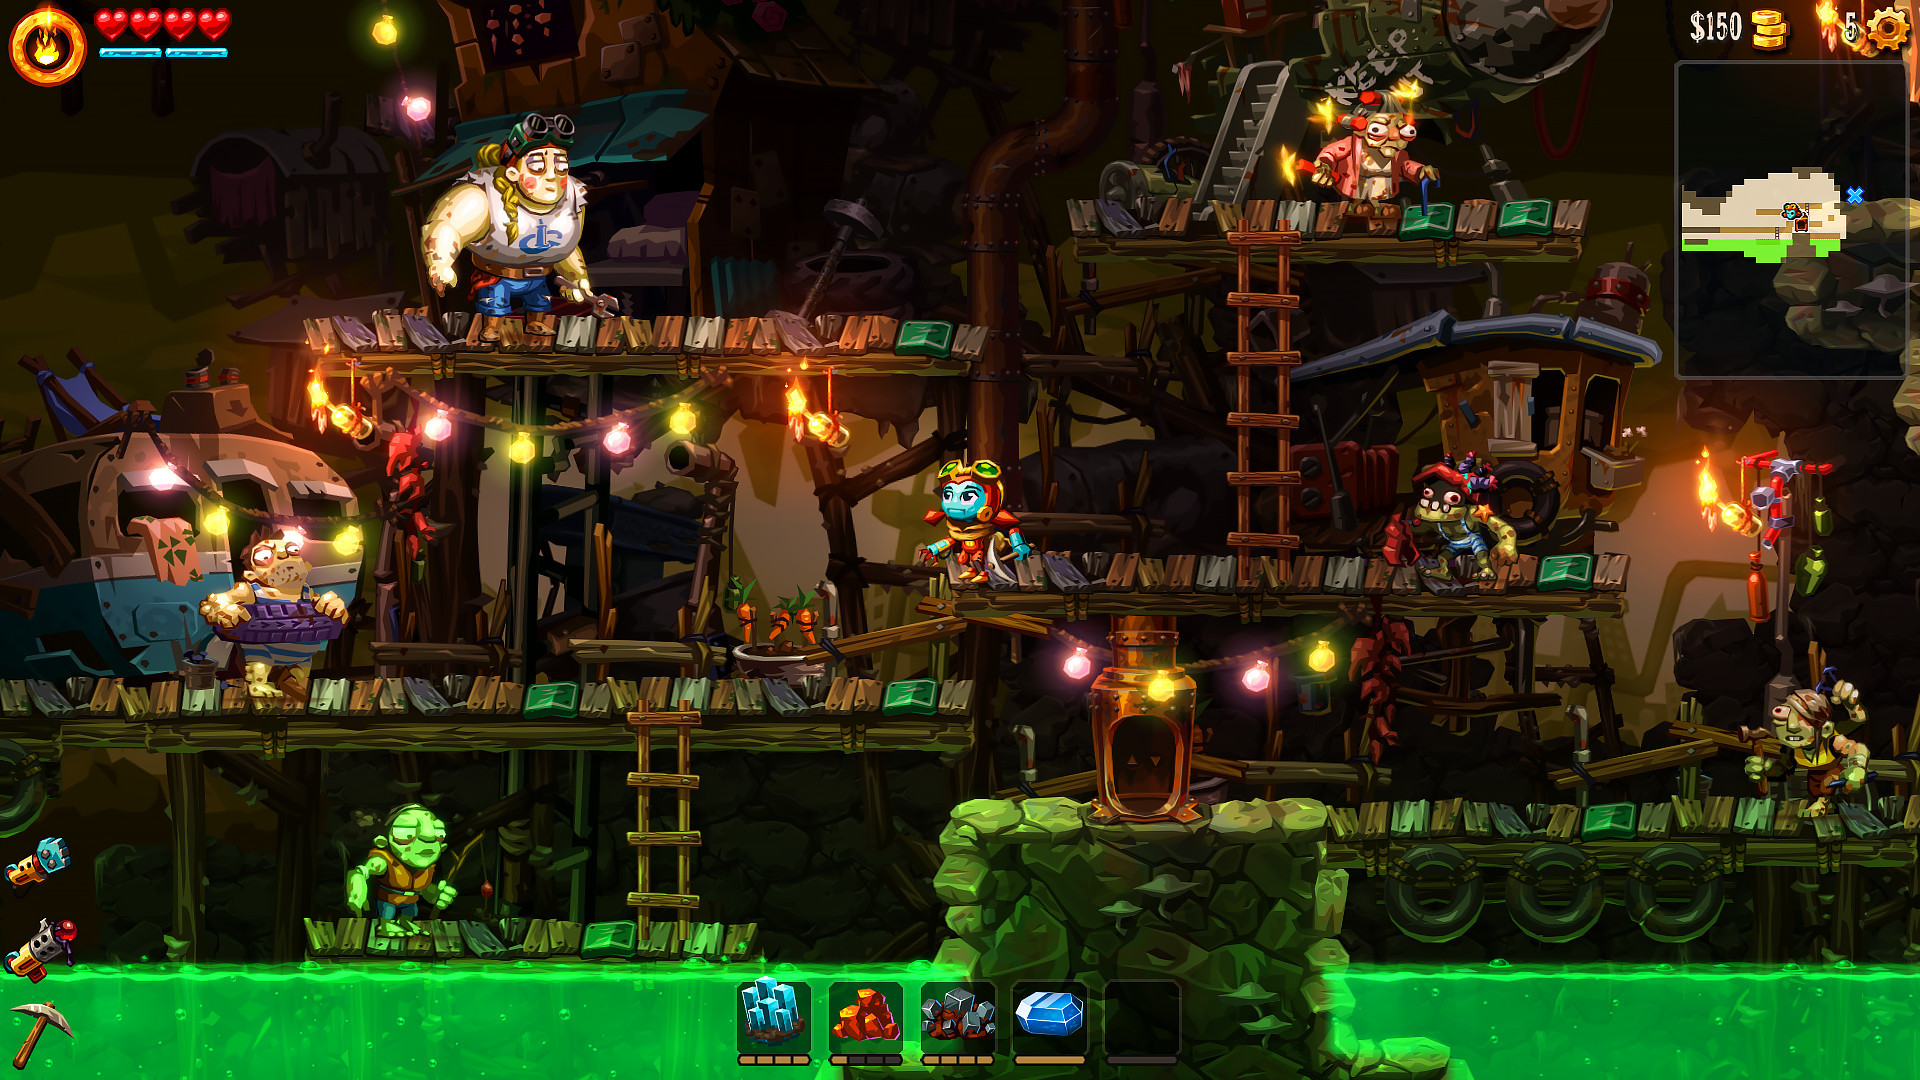 Steamworld Dig 2 gameplay